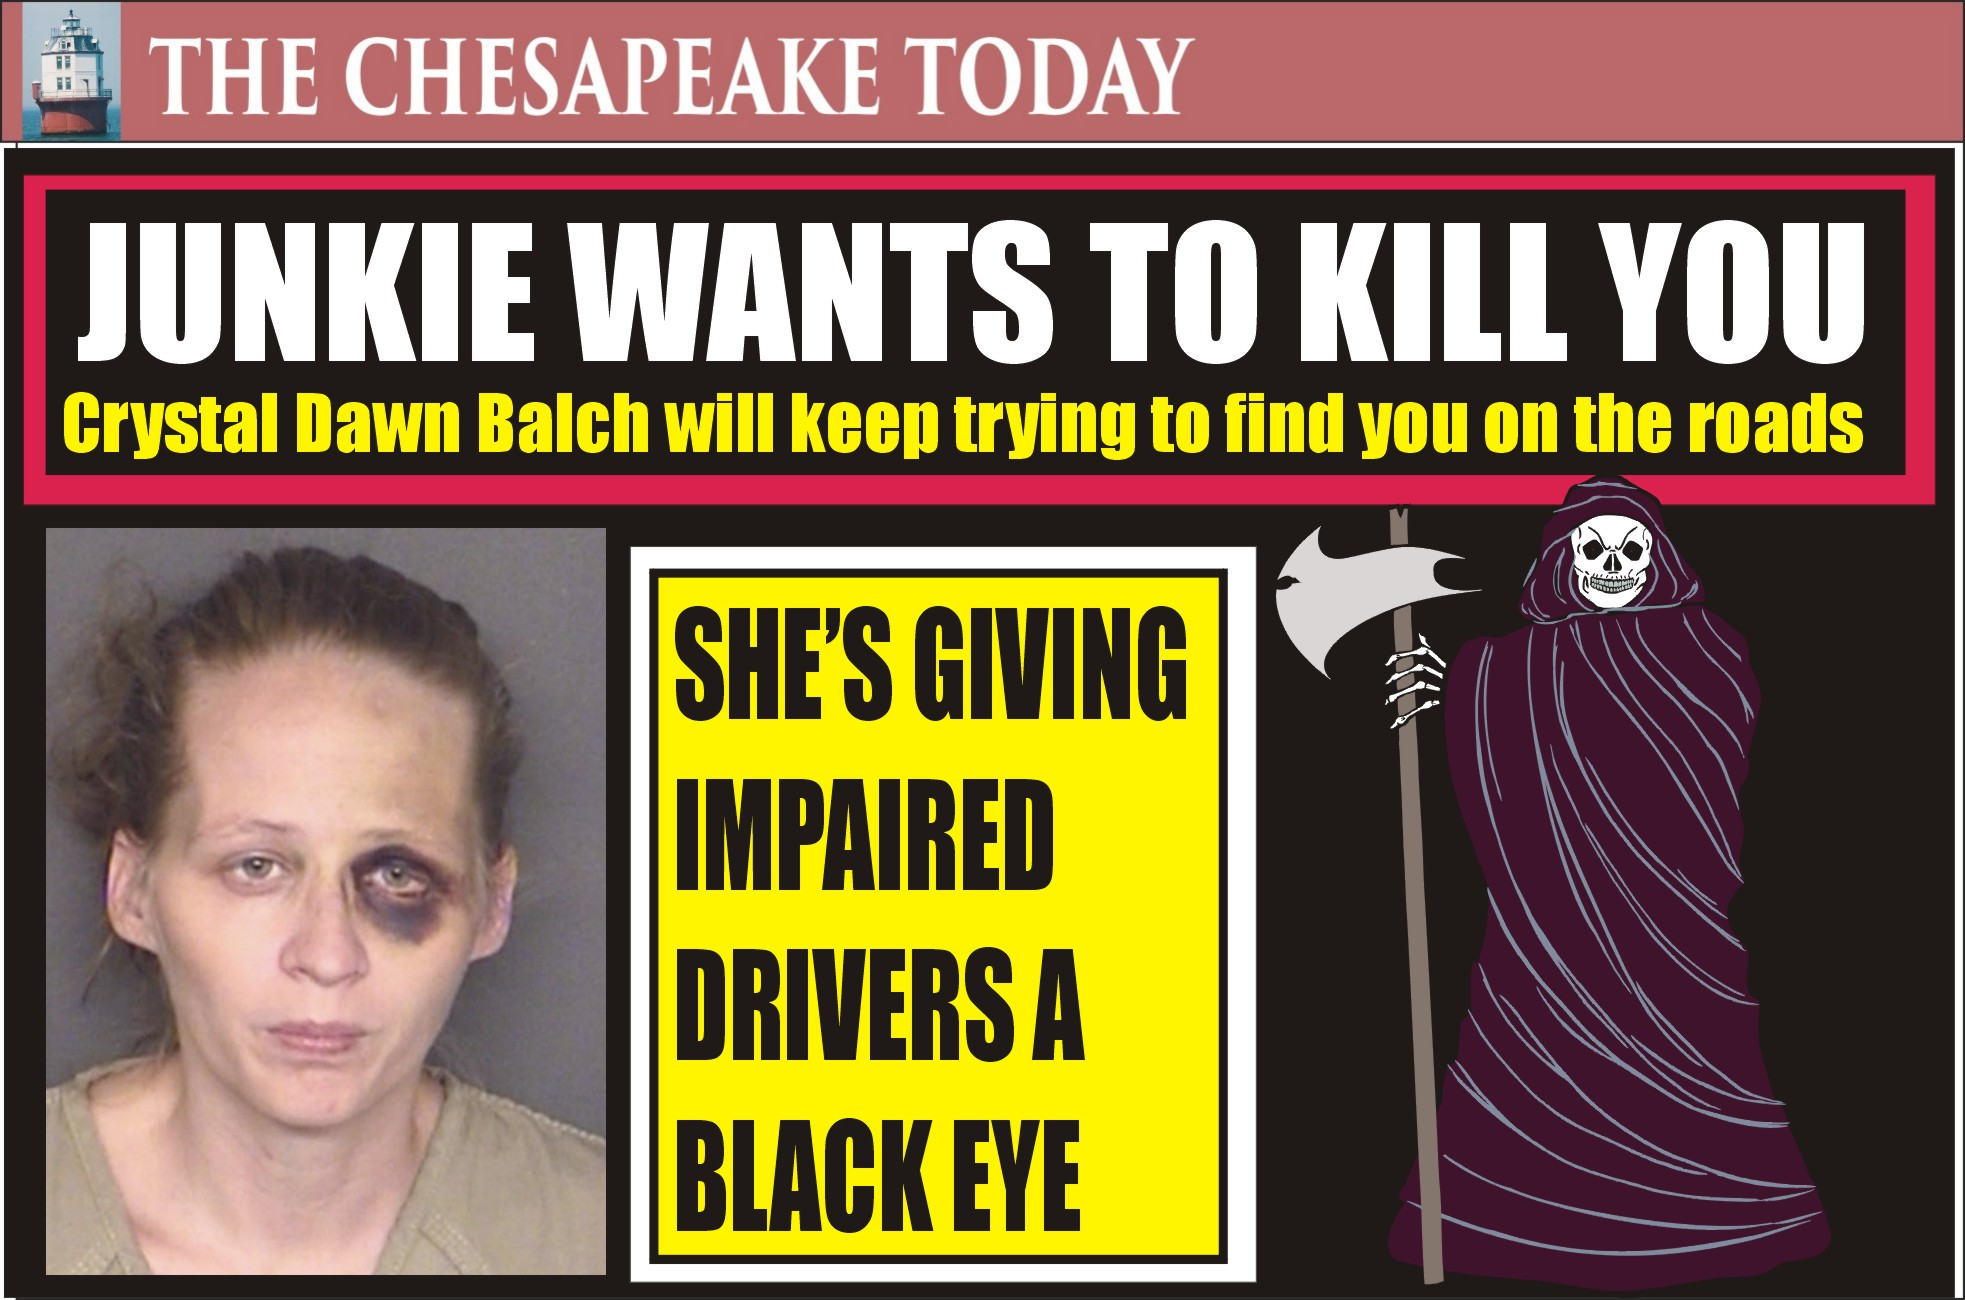 HEROIN HIGHWAY TO HELL: DWI & DRUGS GO TOGETHER LIKE A HORSE & CARRIAGE FOR CRYSTAL BALCH